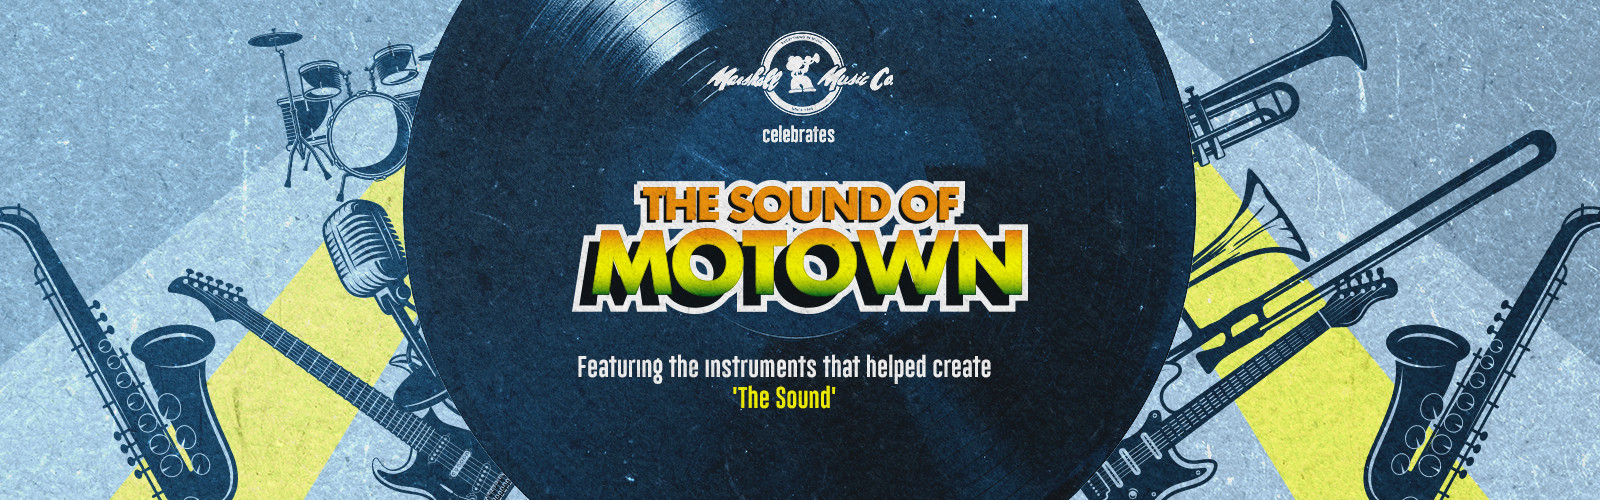 The Sound of Motown Promo